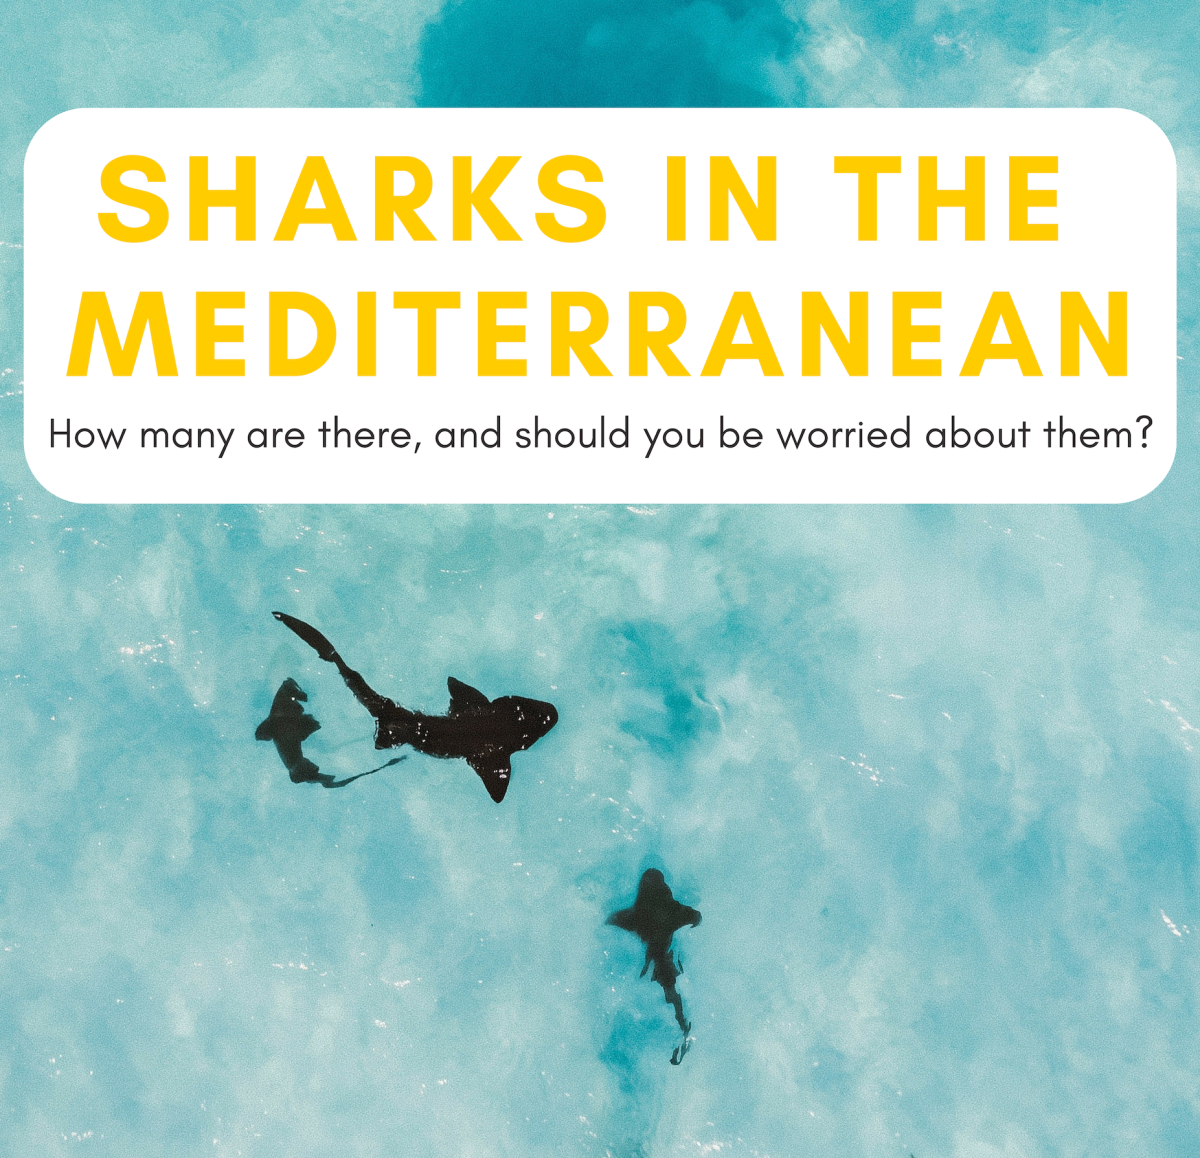 Types of Sharks in the Mediterranean Sea